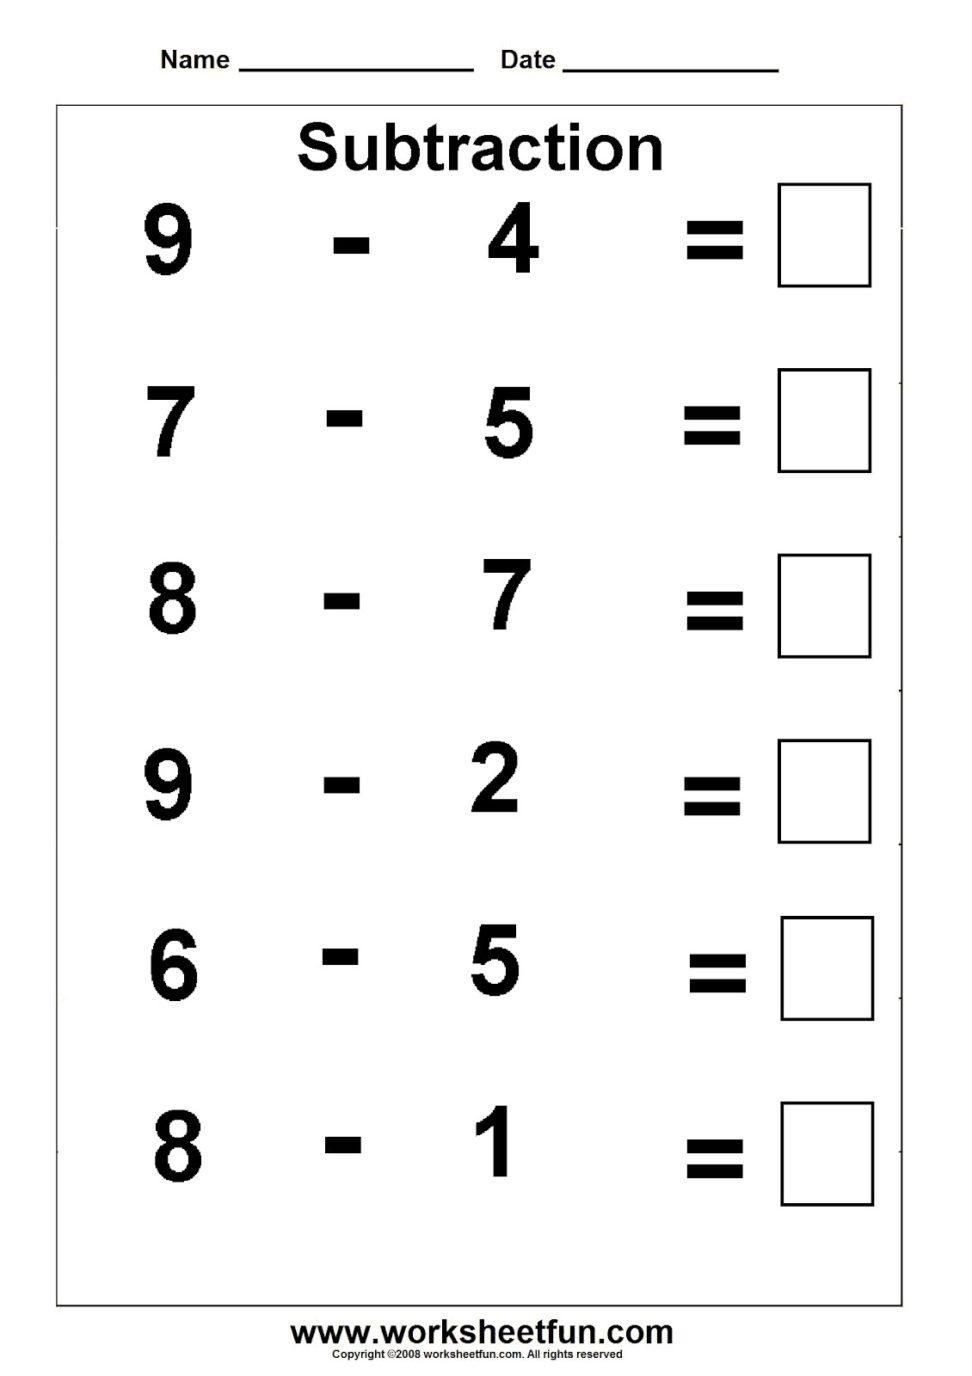 Kindergarten Math Worksheet Pdf Kindergarten Math Worksheets Pdf to Print Kindergarten Math